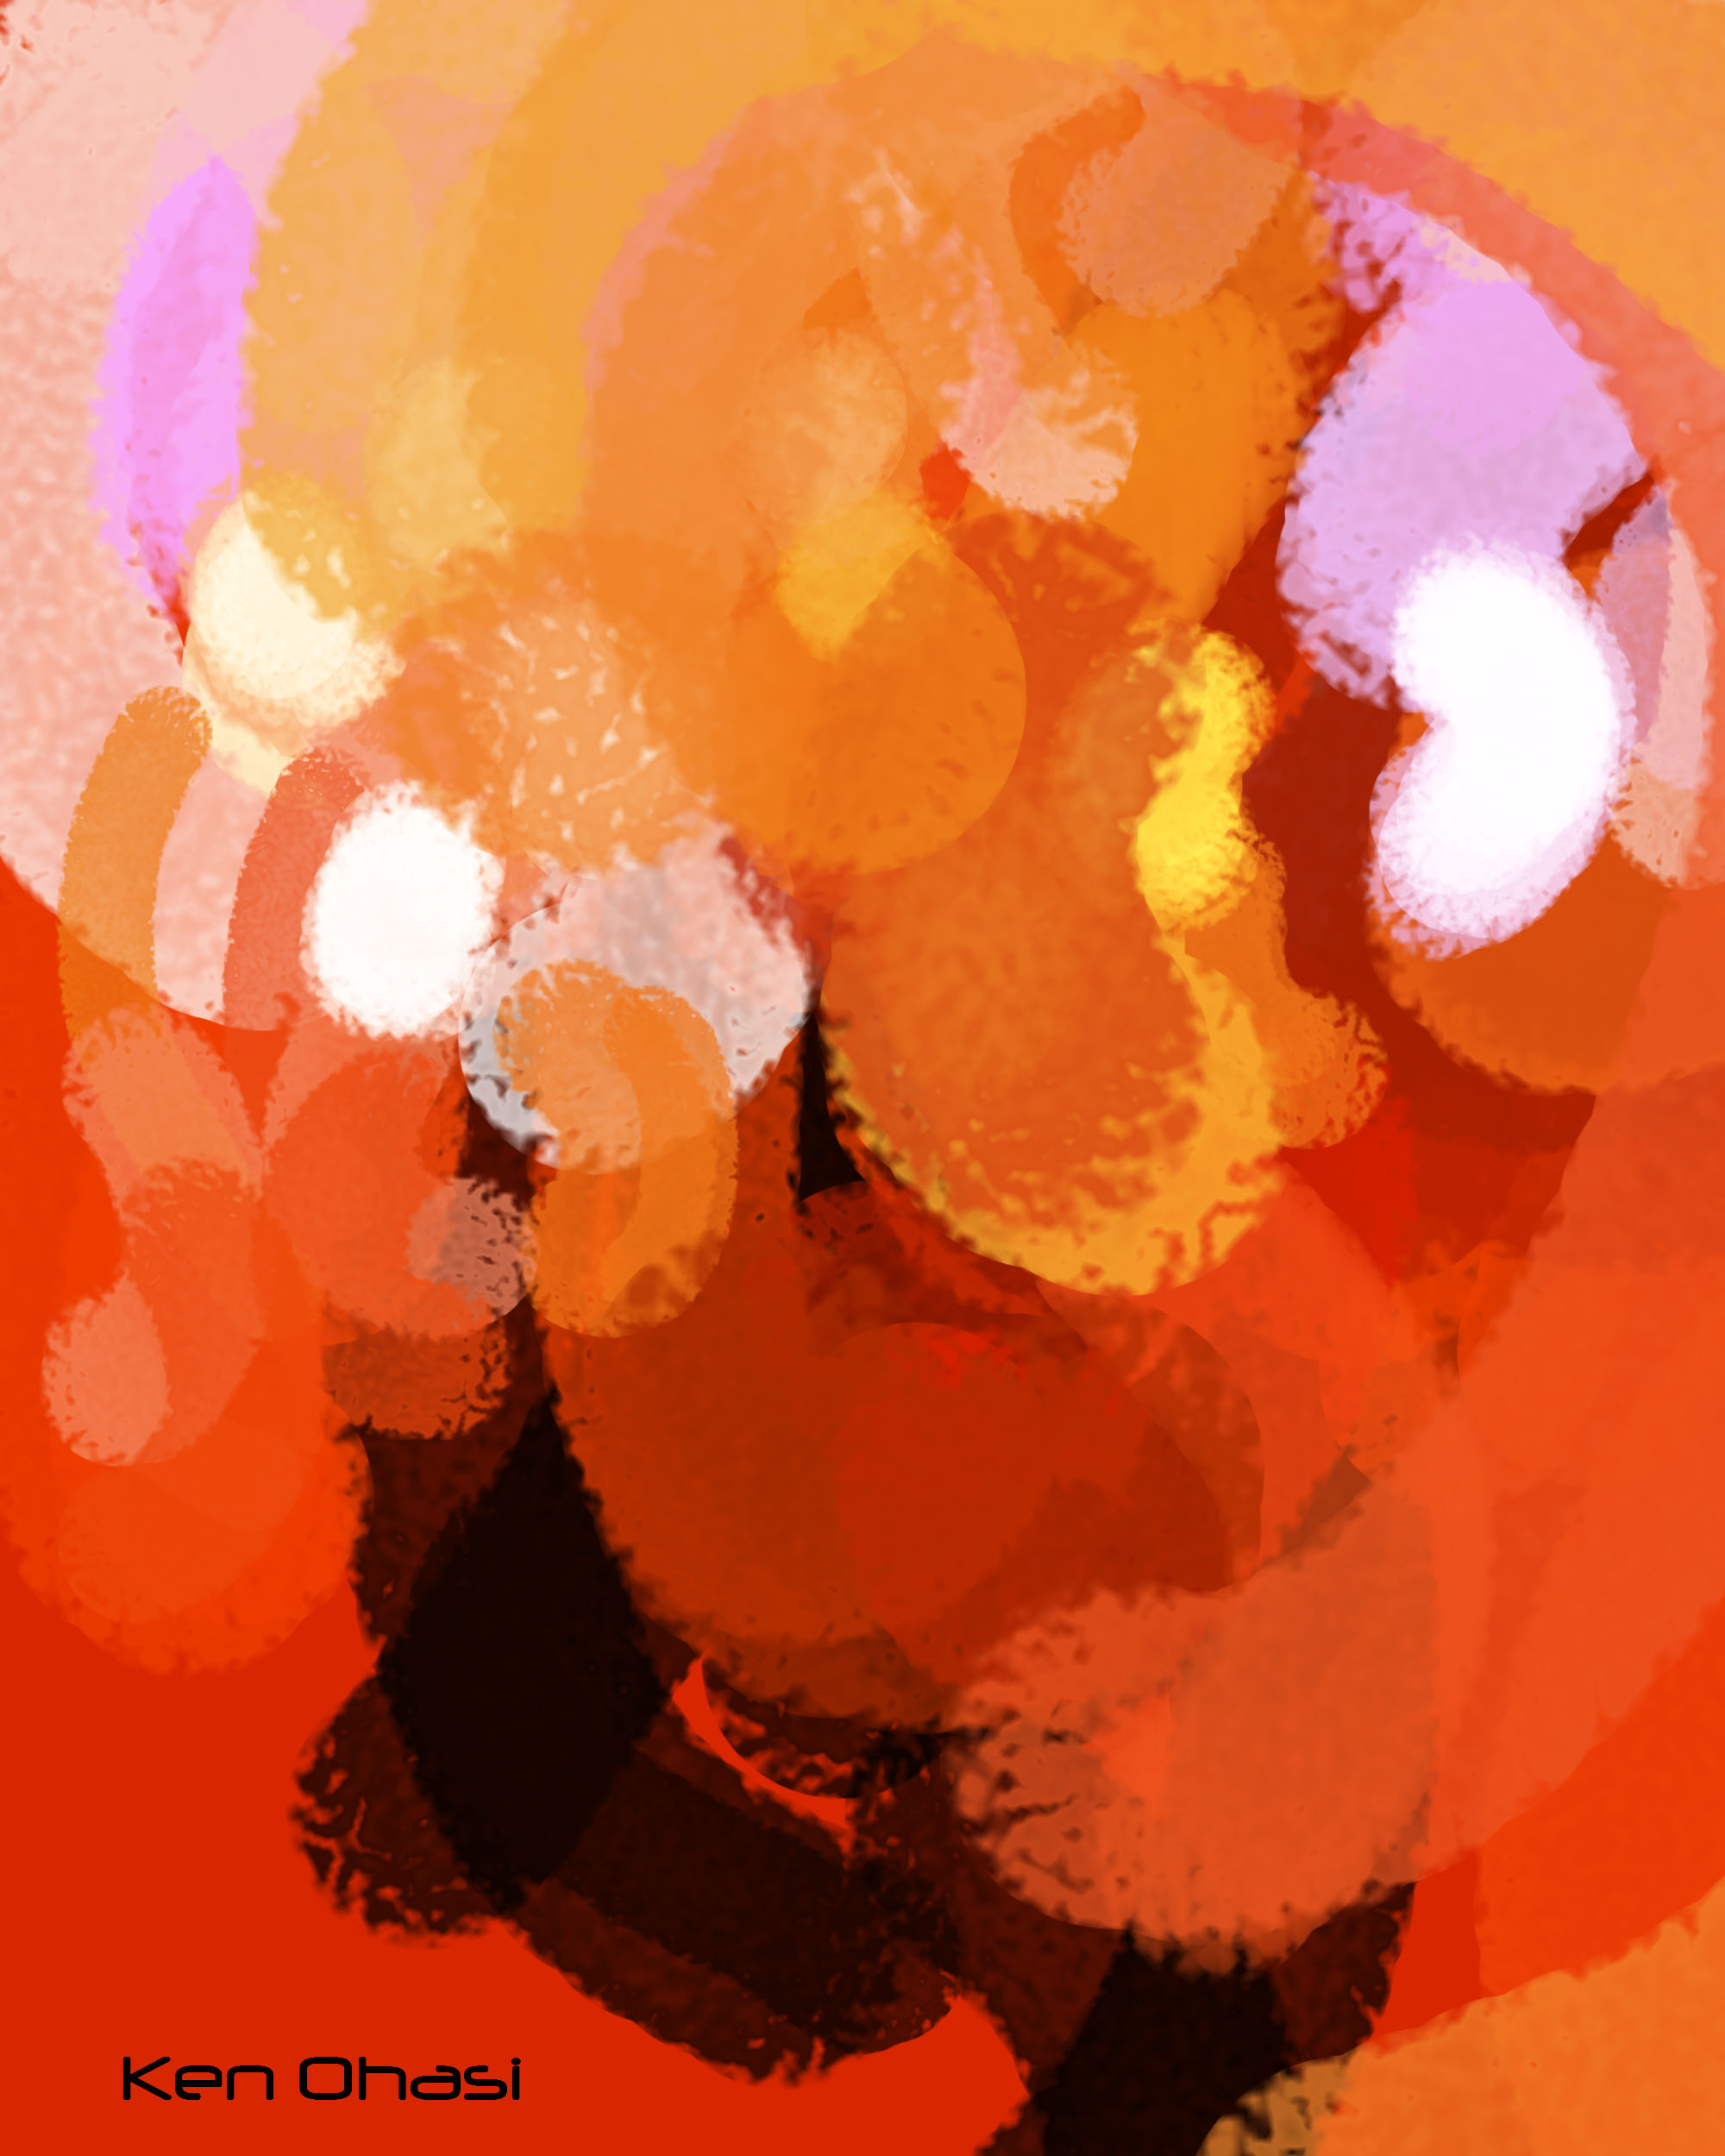 Abstraction 20100807_07